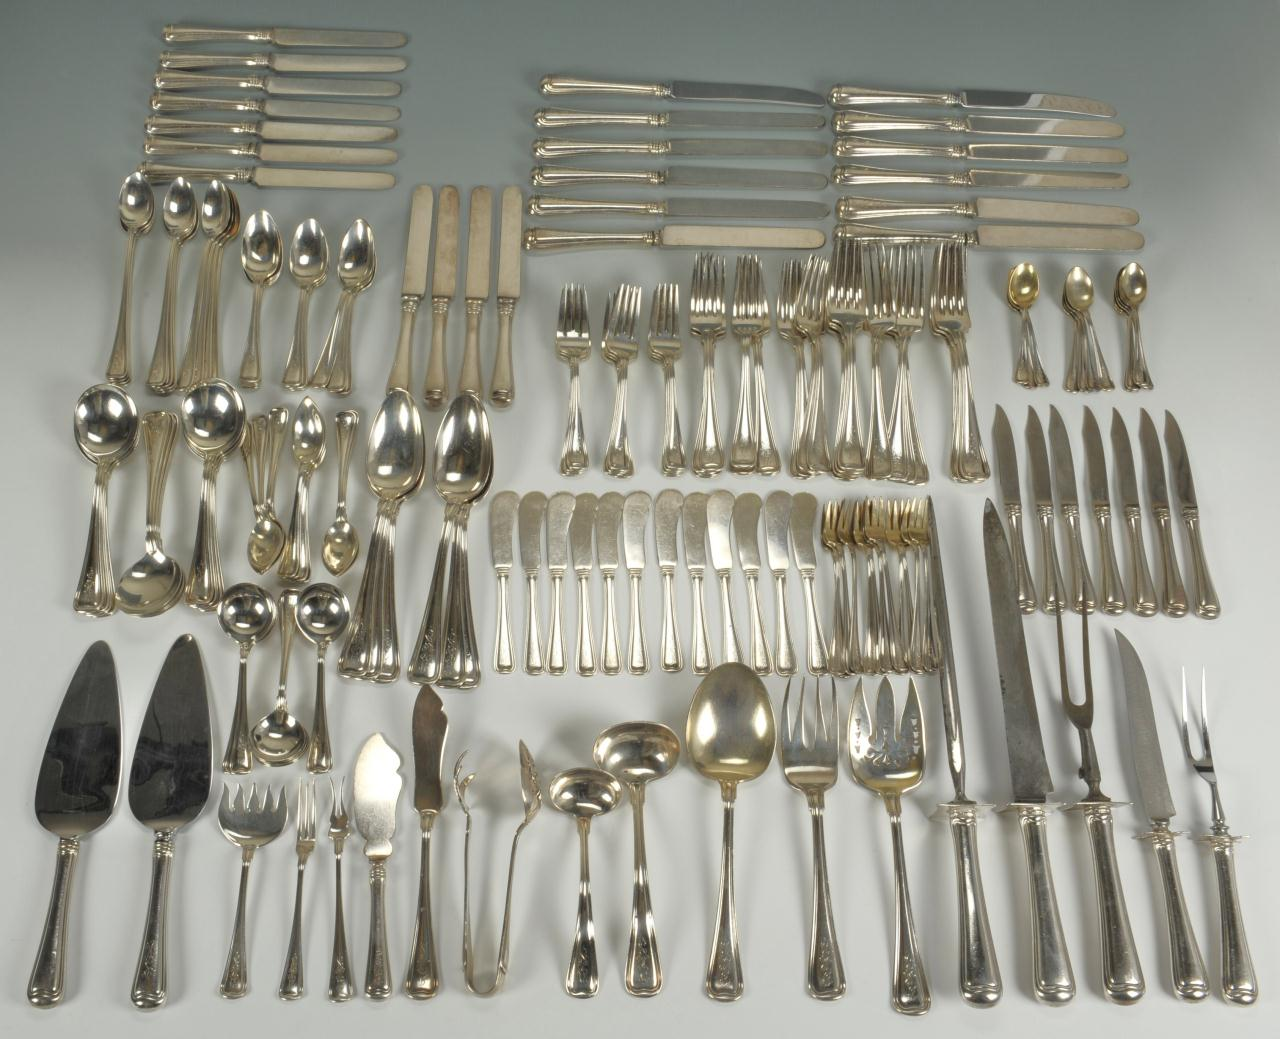 & Lot 81: 183 pieces Gorham Old French Sterling Flatware